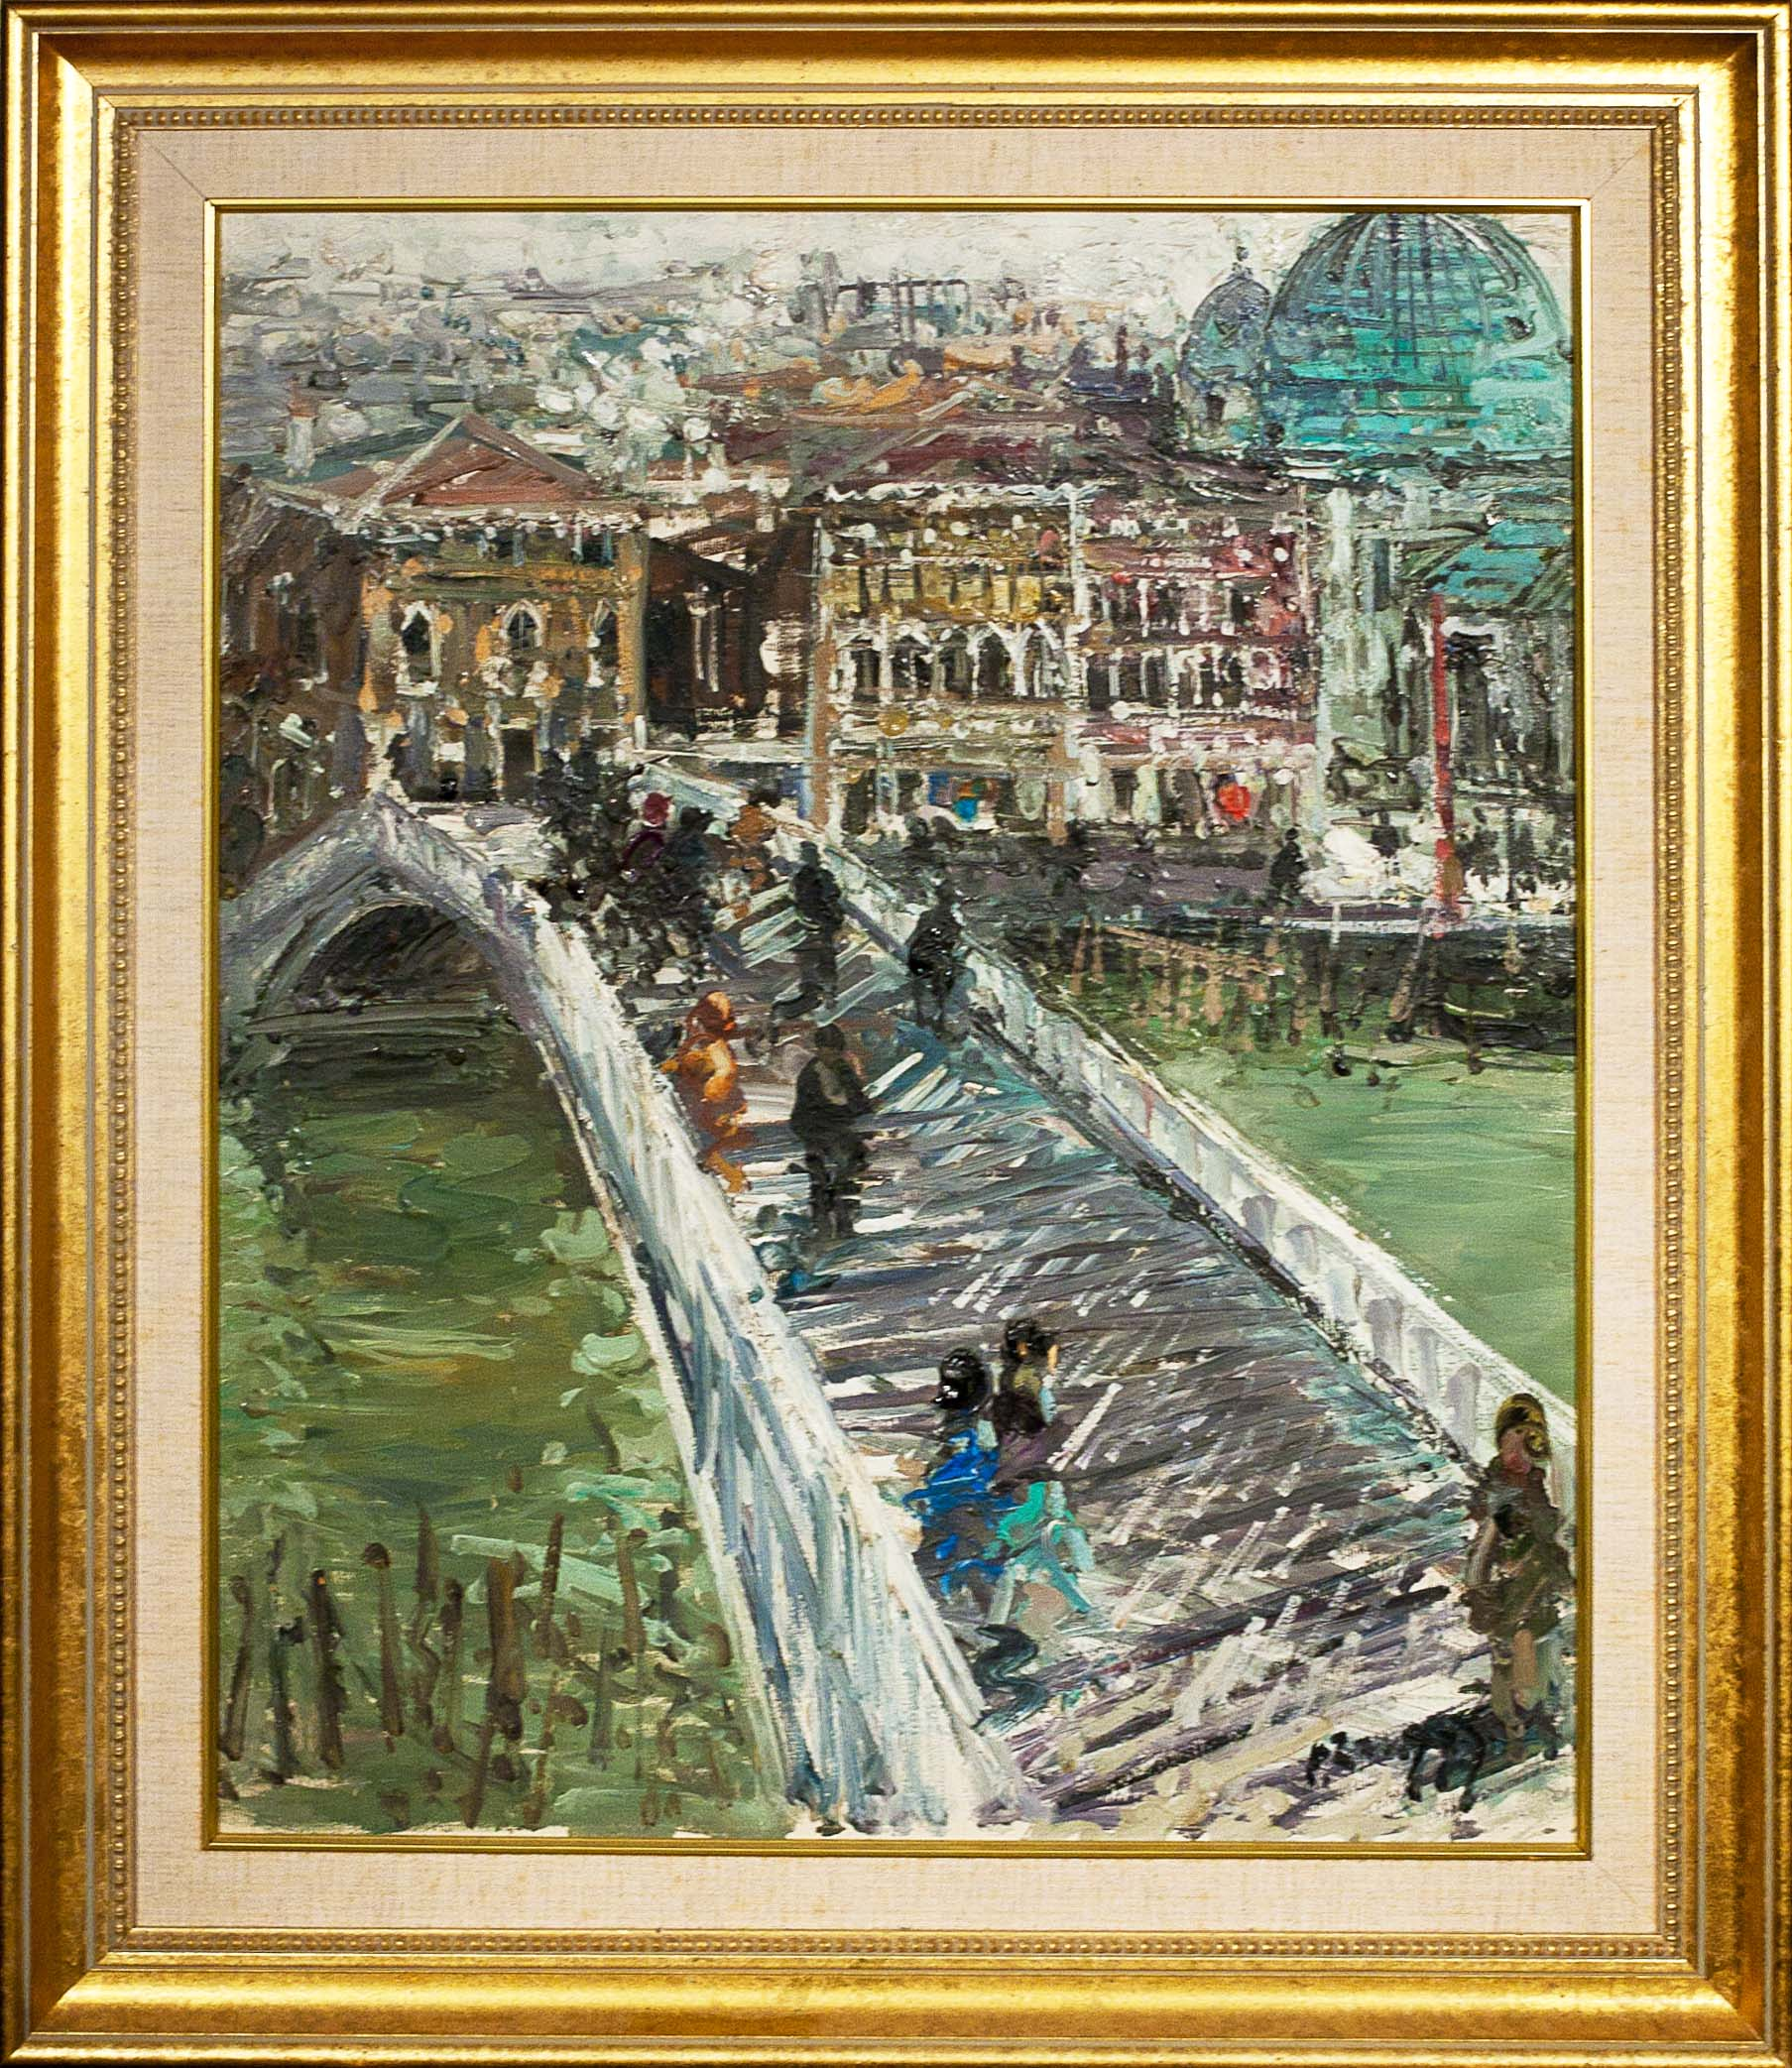 Bridge in Venice by Dino Zampogna. Oil on canvas. 20.0 in x 24.0 in. 1926